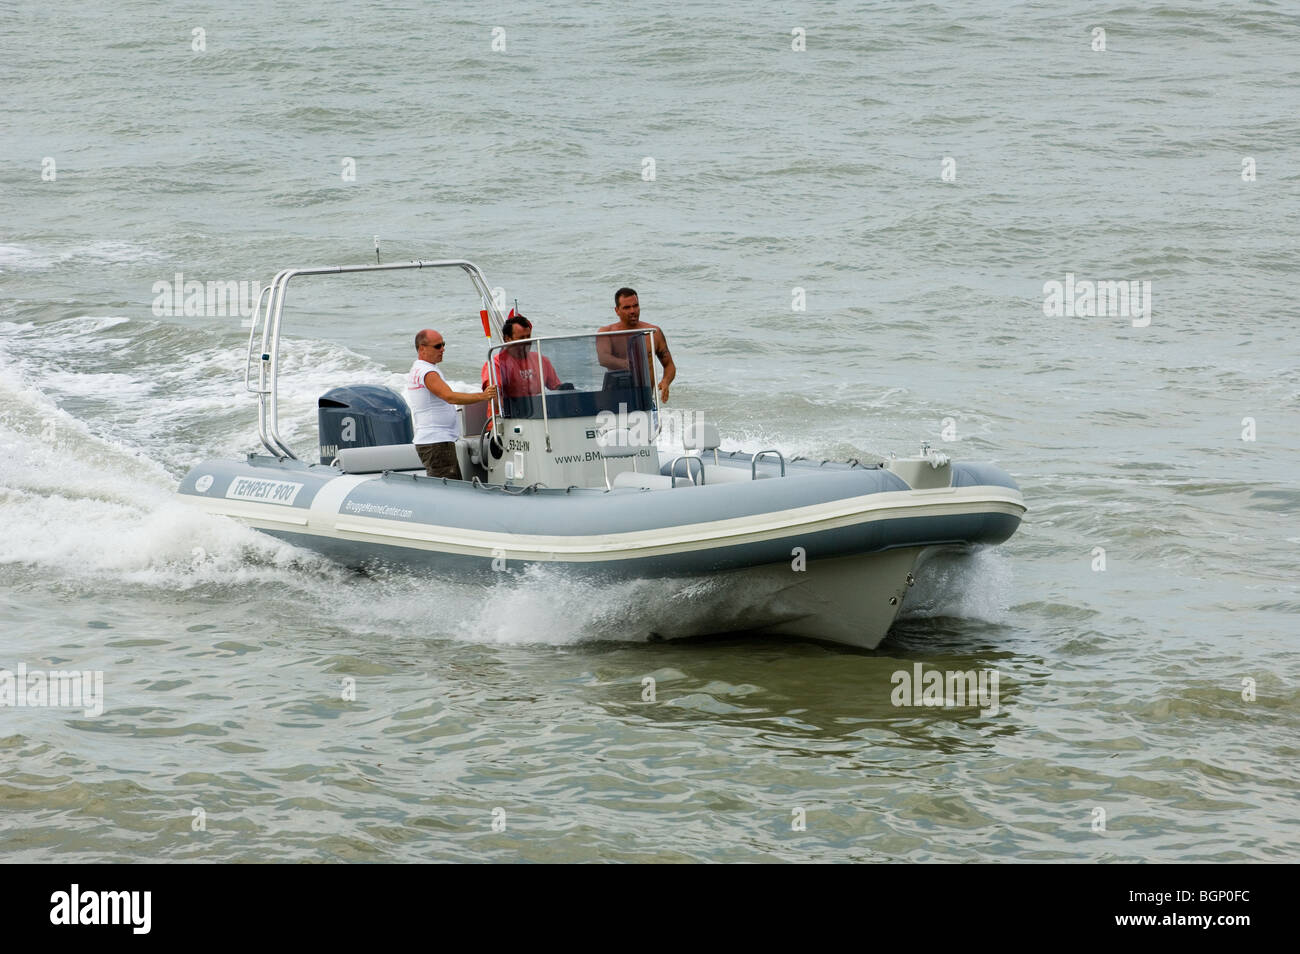 Three men riding powerboat on the North Sea, Belgium - Stock Image